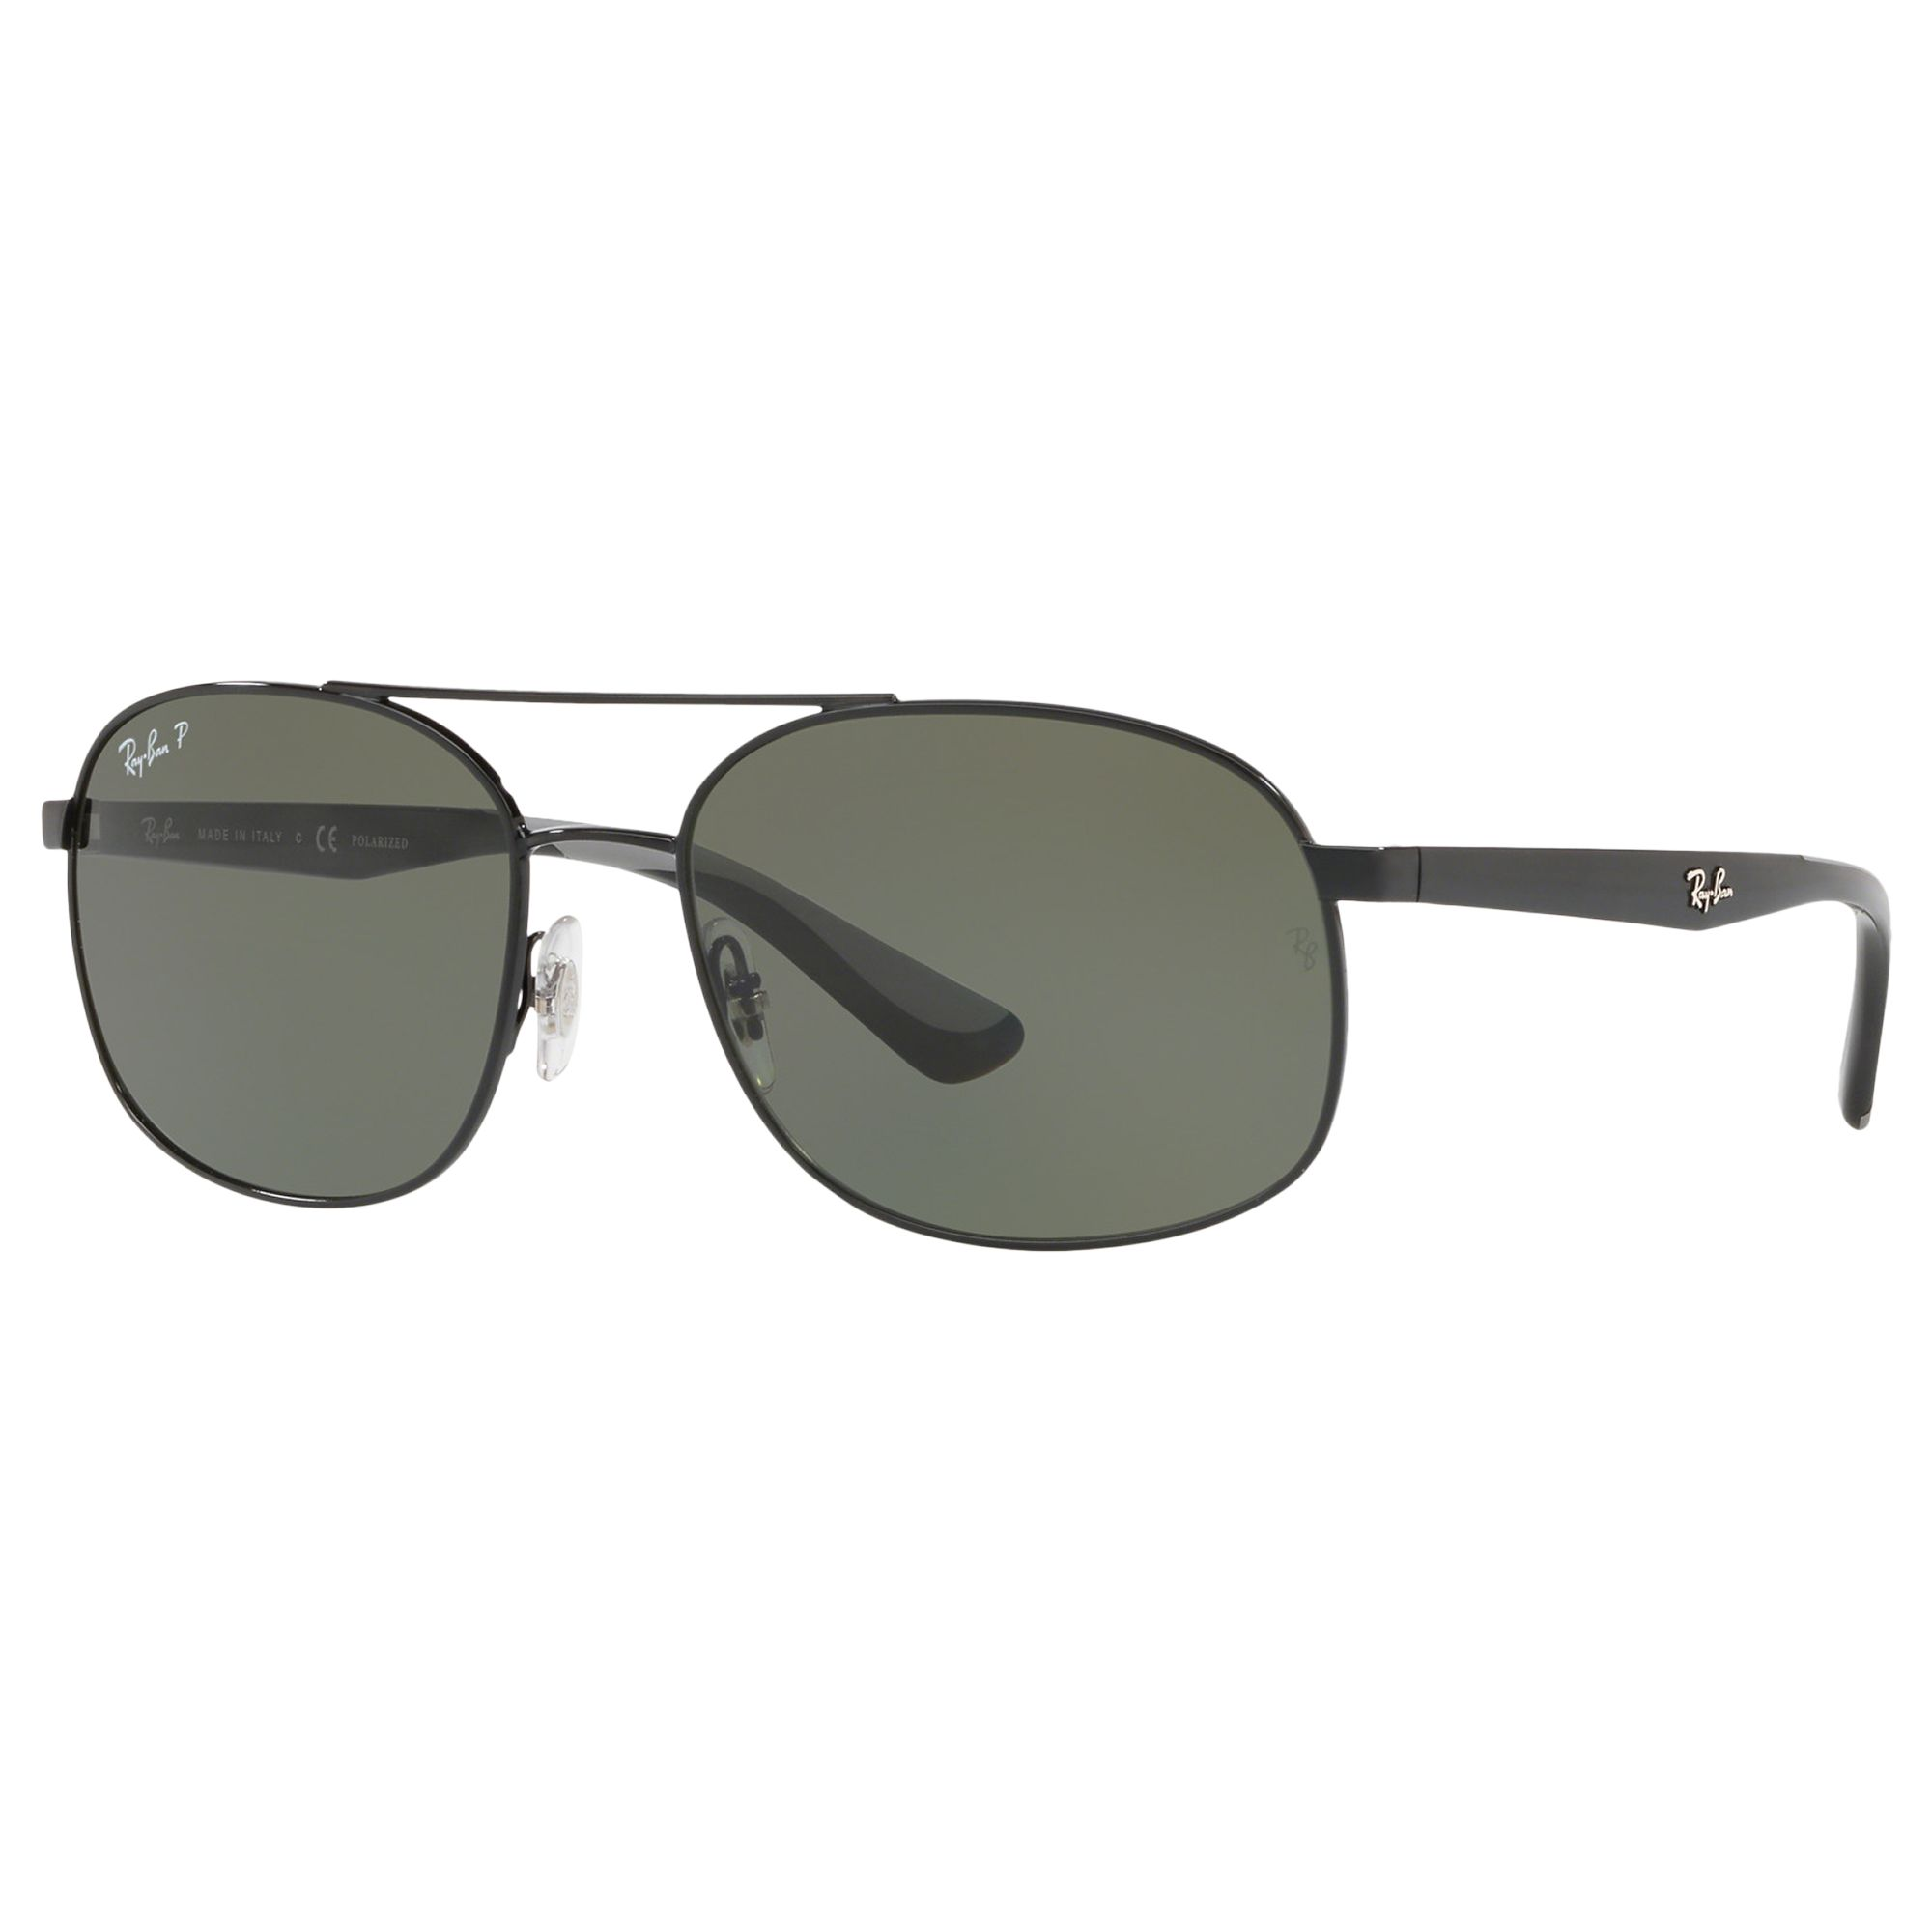 4f20a274a34 Ray-Ban RB3593 Unisex Polarised Oval Sunglasses